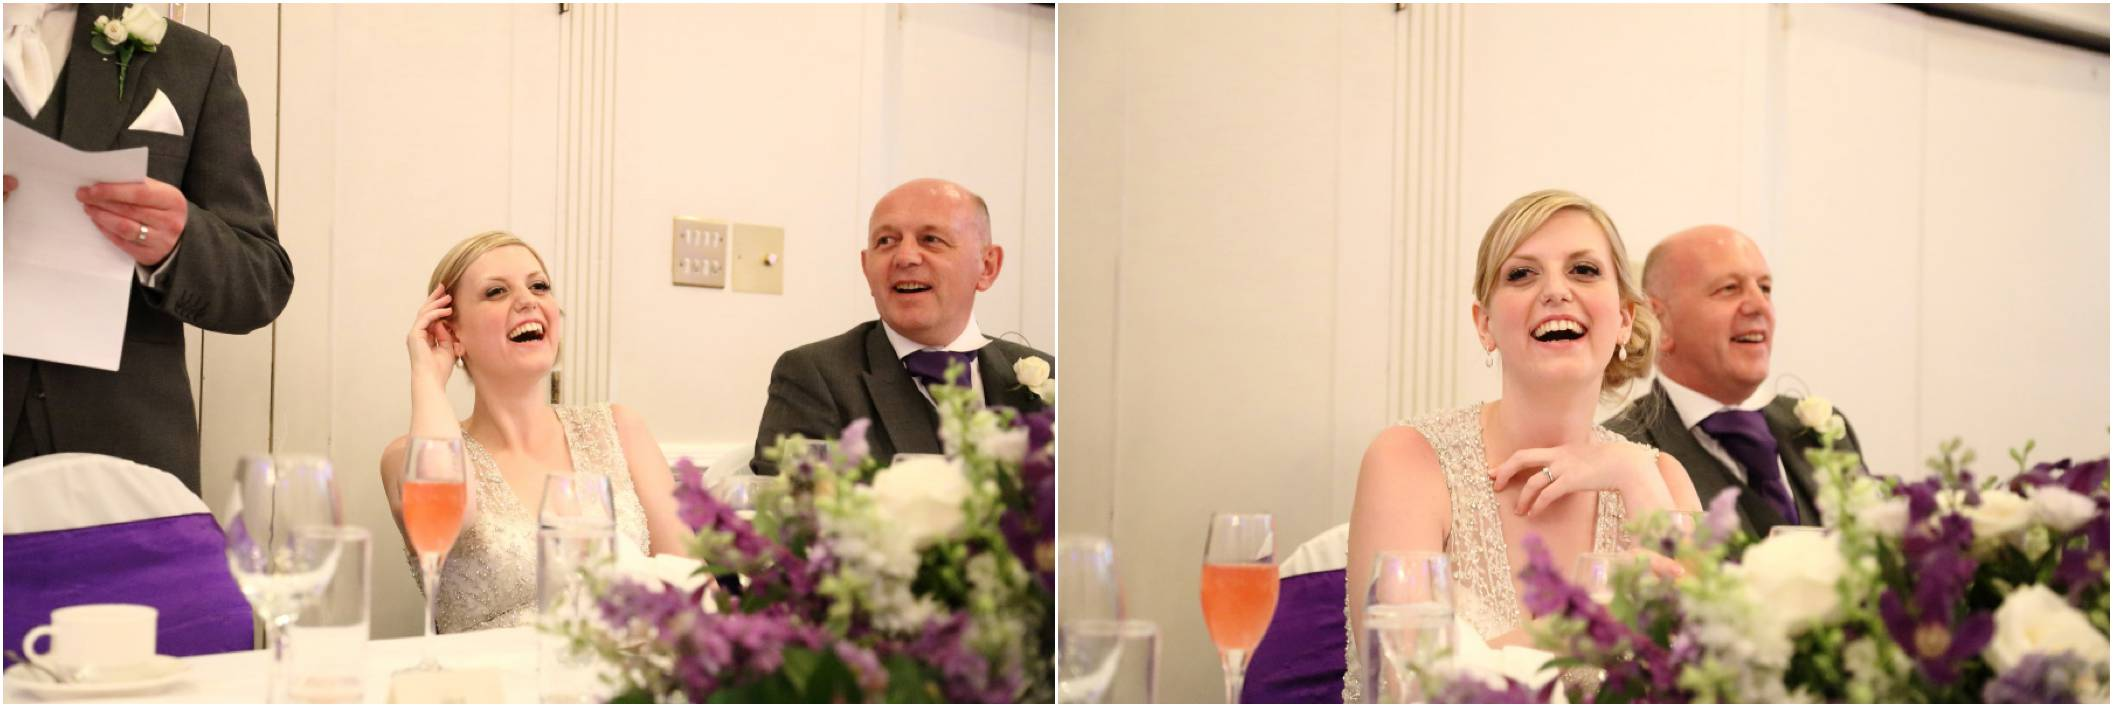 bedford-lodge-wedding-photography-newmarket_0027